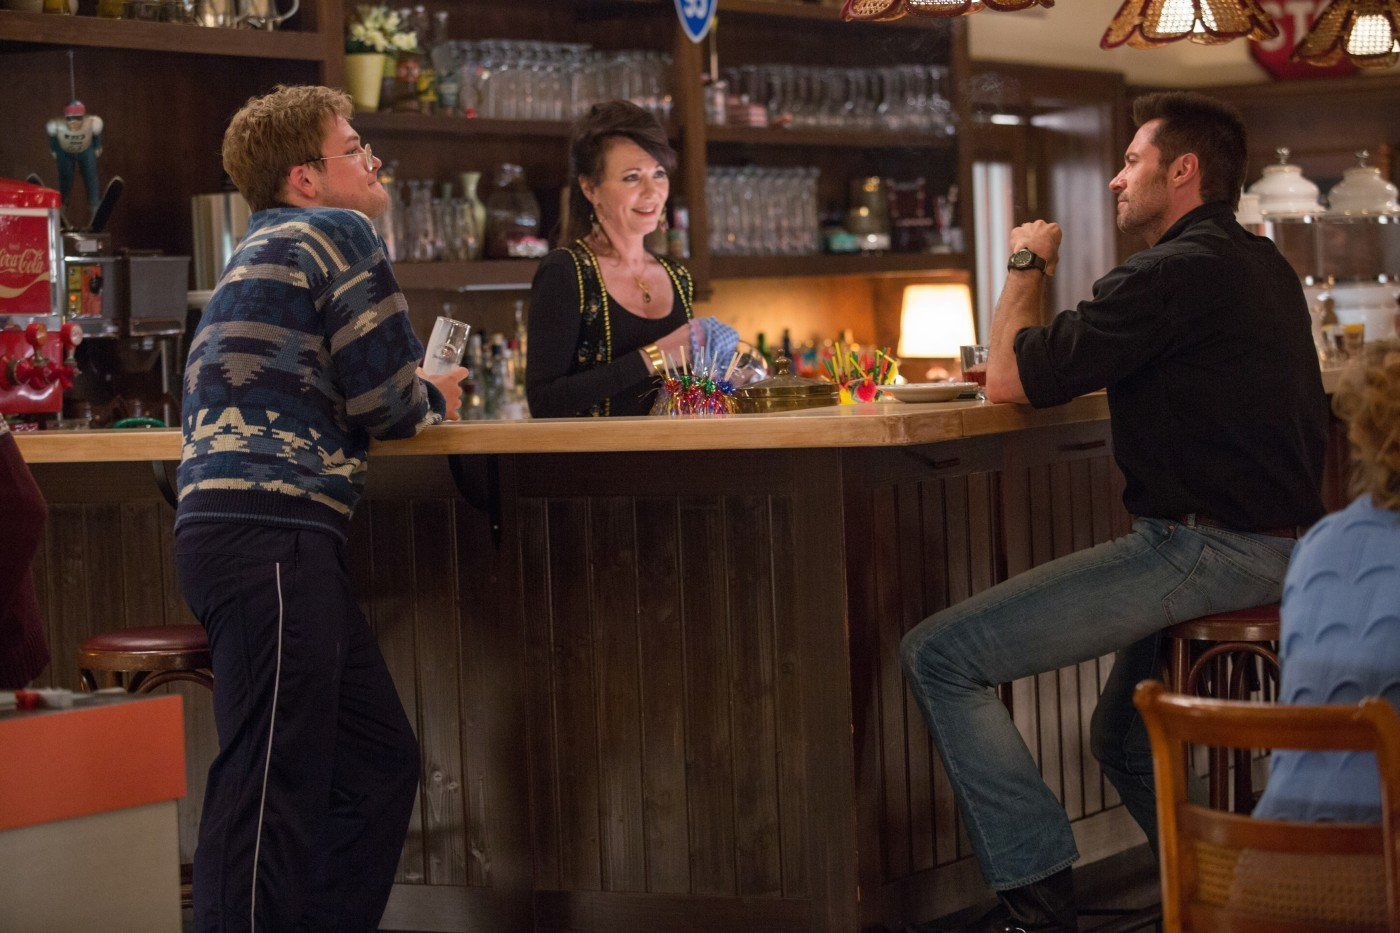 Iris Berben, Hugh Jackman, and Taron Egerton in Eddie the Eagle (2015)